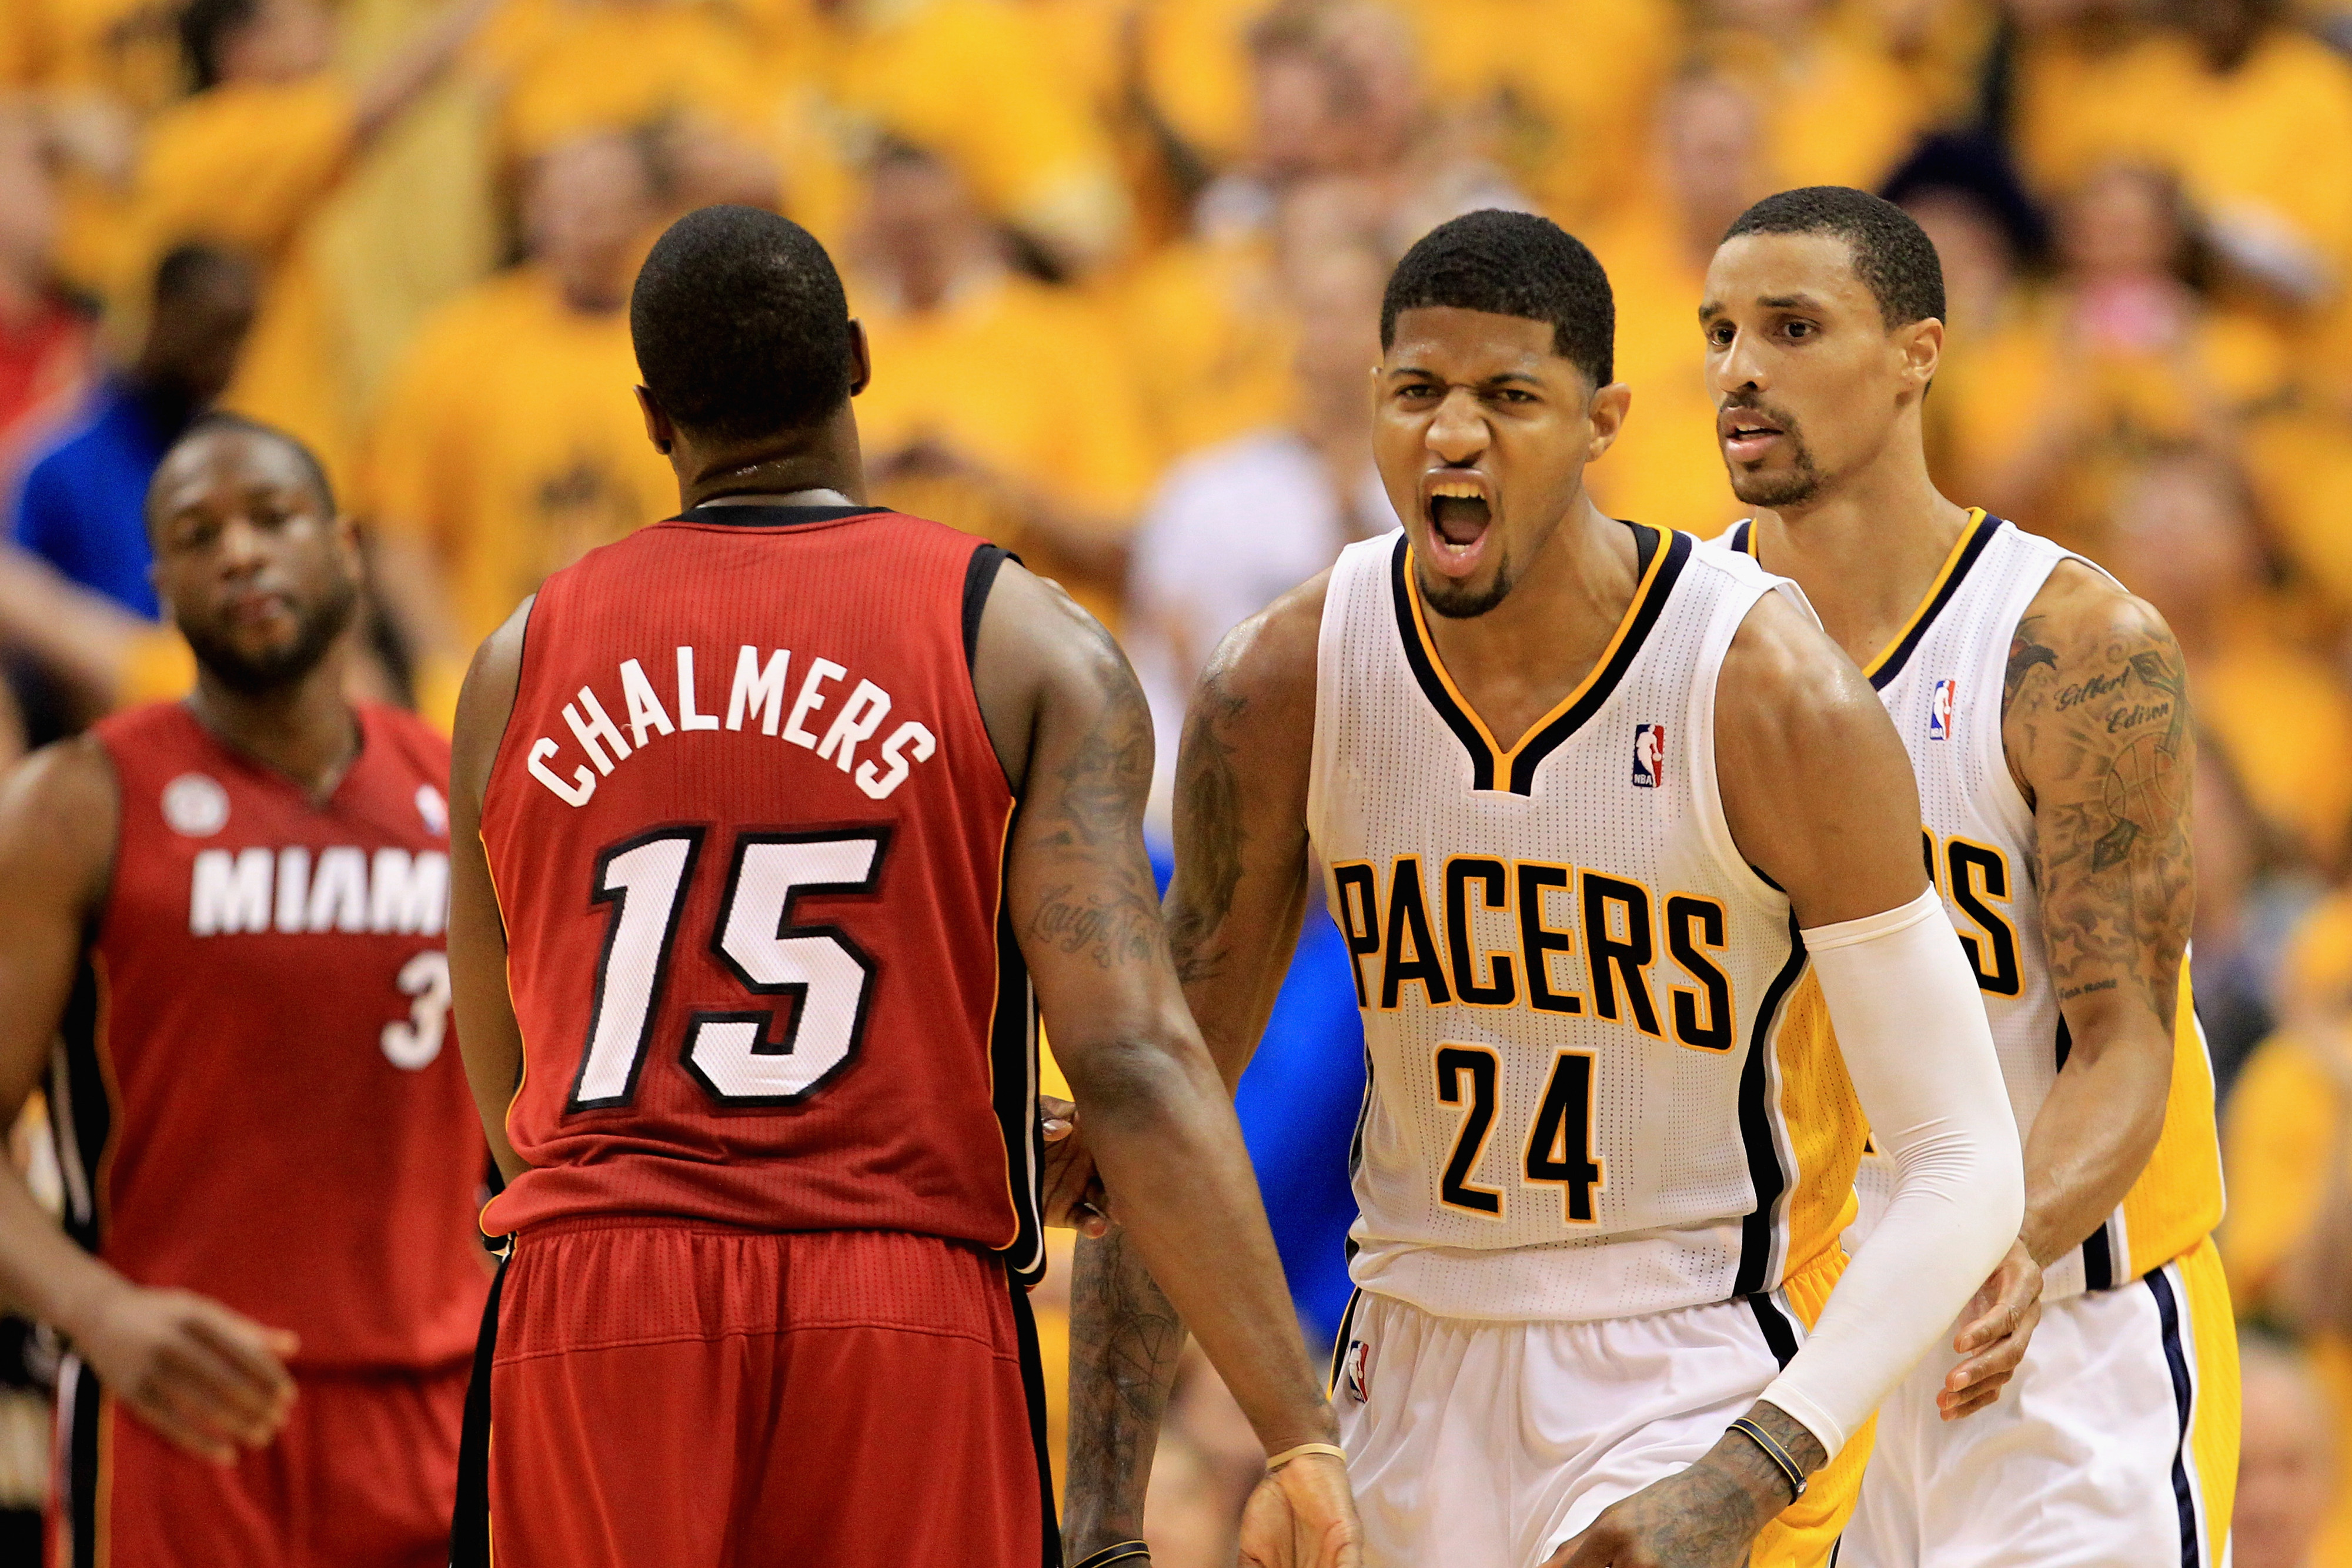 NBA Playoffs 2013, Heat vs. Pacers Game 6: Indiana forces Game 7 with 91-77 victory